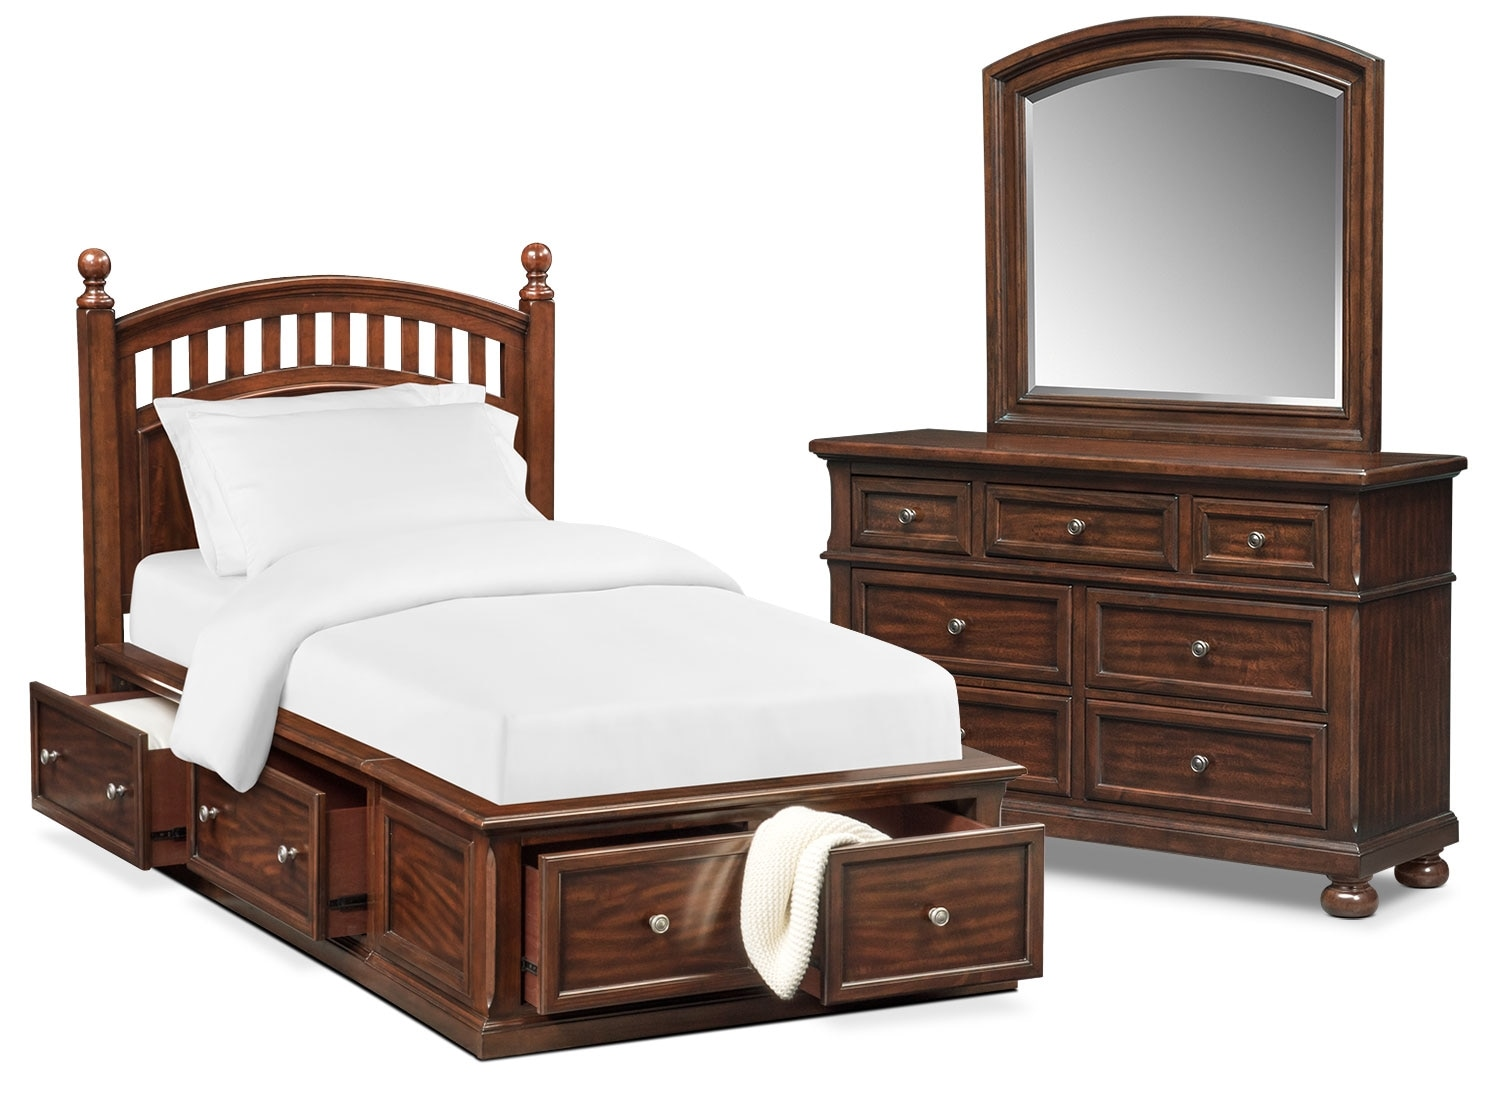 Kids Furniture - Hanover Youth 5-Piece Poster Storage Bedroom Set with Dresser and Mirror